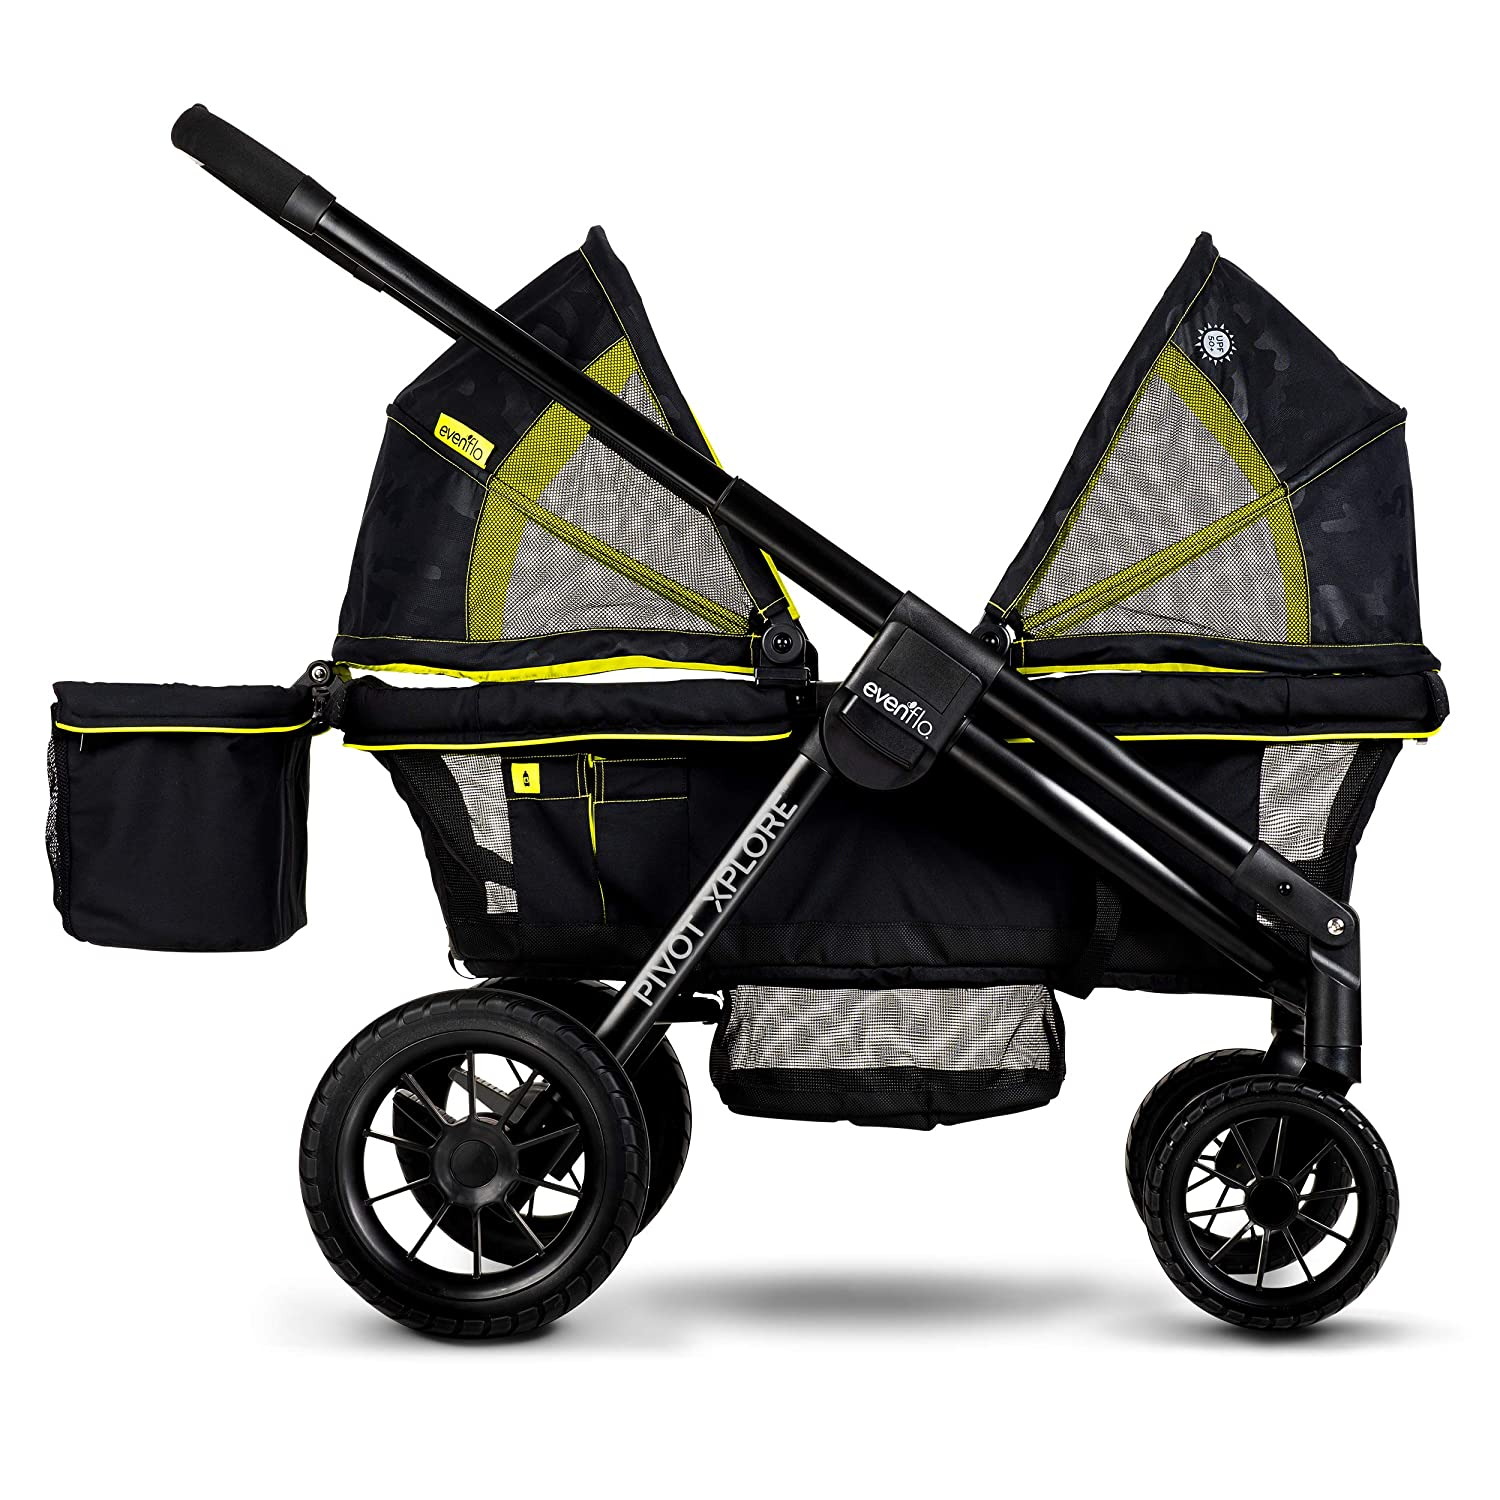 Evenflo Pivot Xplore All-Terrain Stroller Wagon